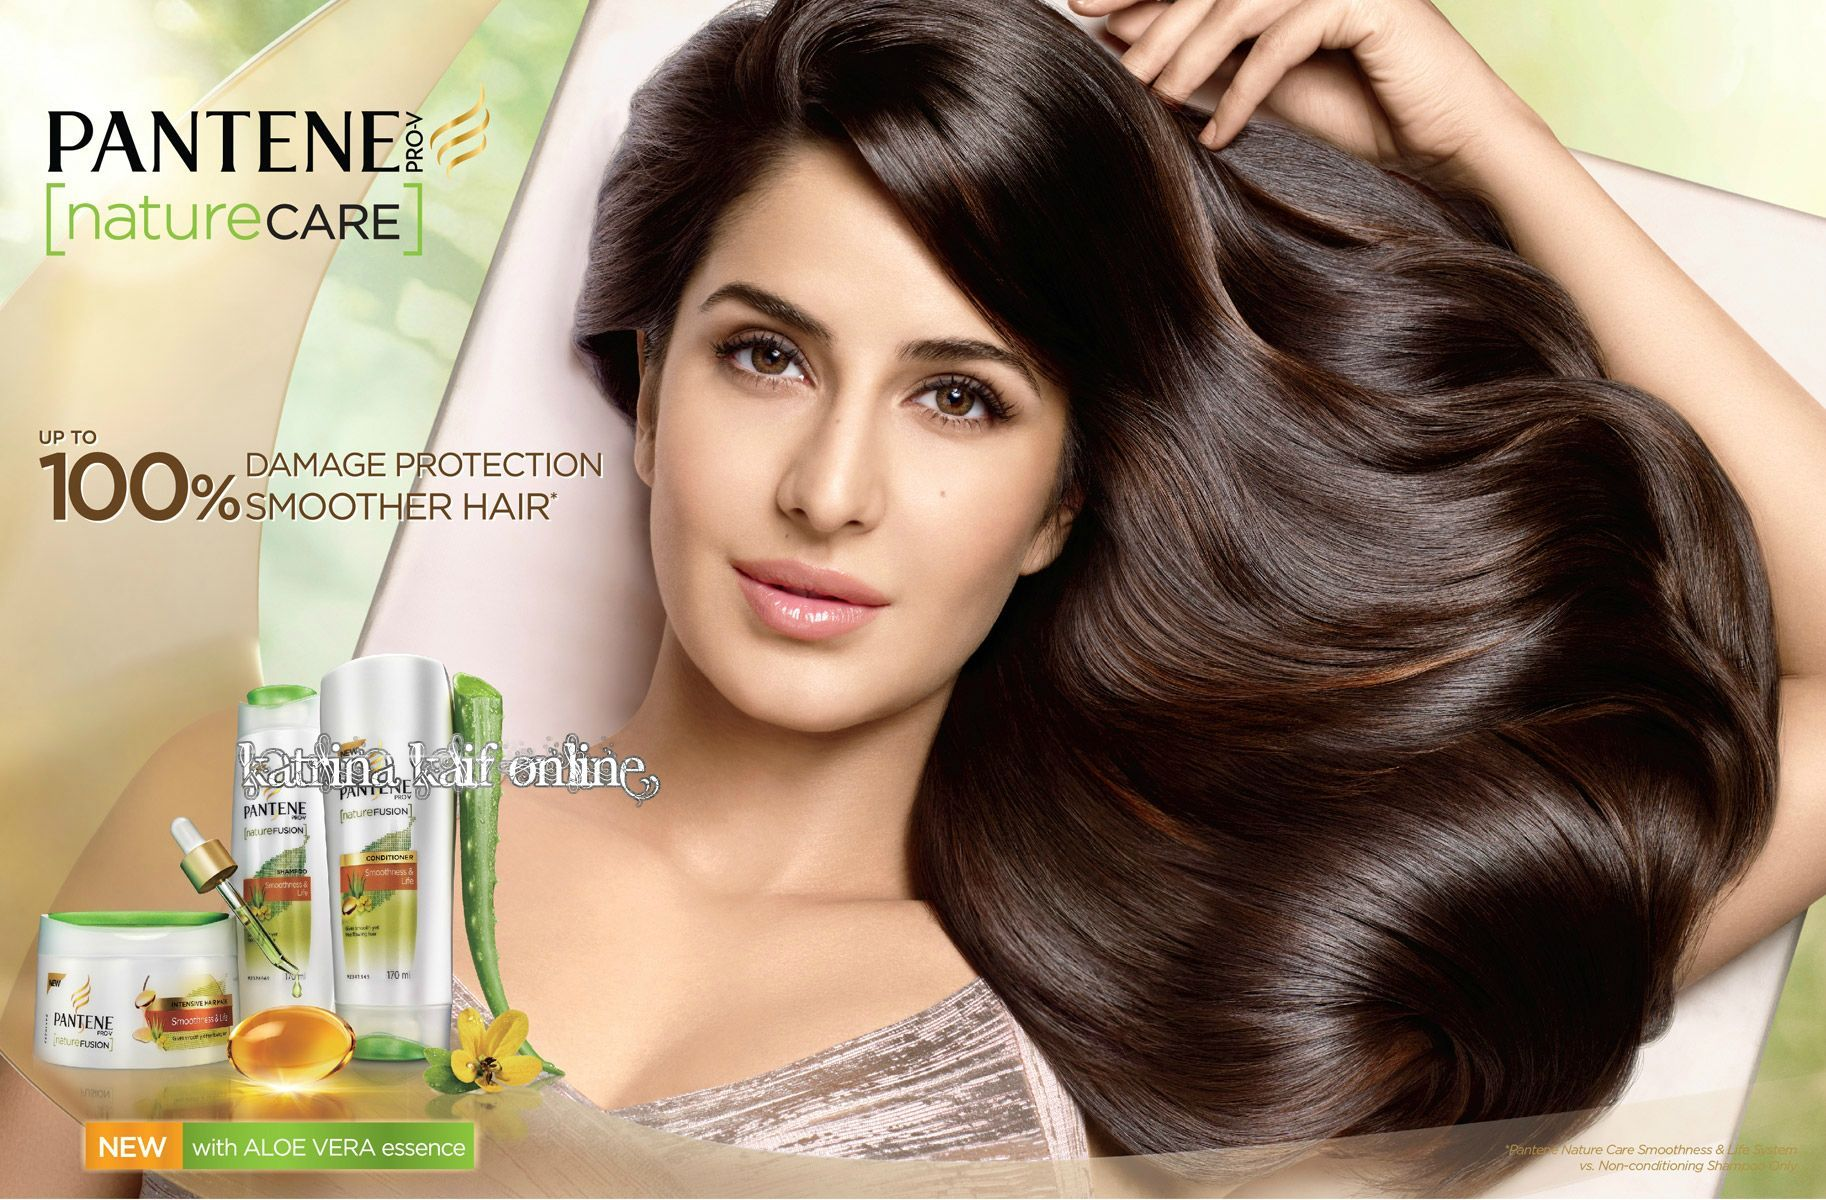 This print advertisement tells why people should choose pantene over any other product. This is also a way of persuading people to buy this product.